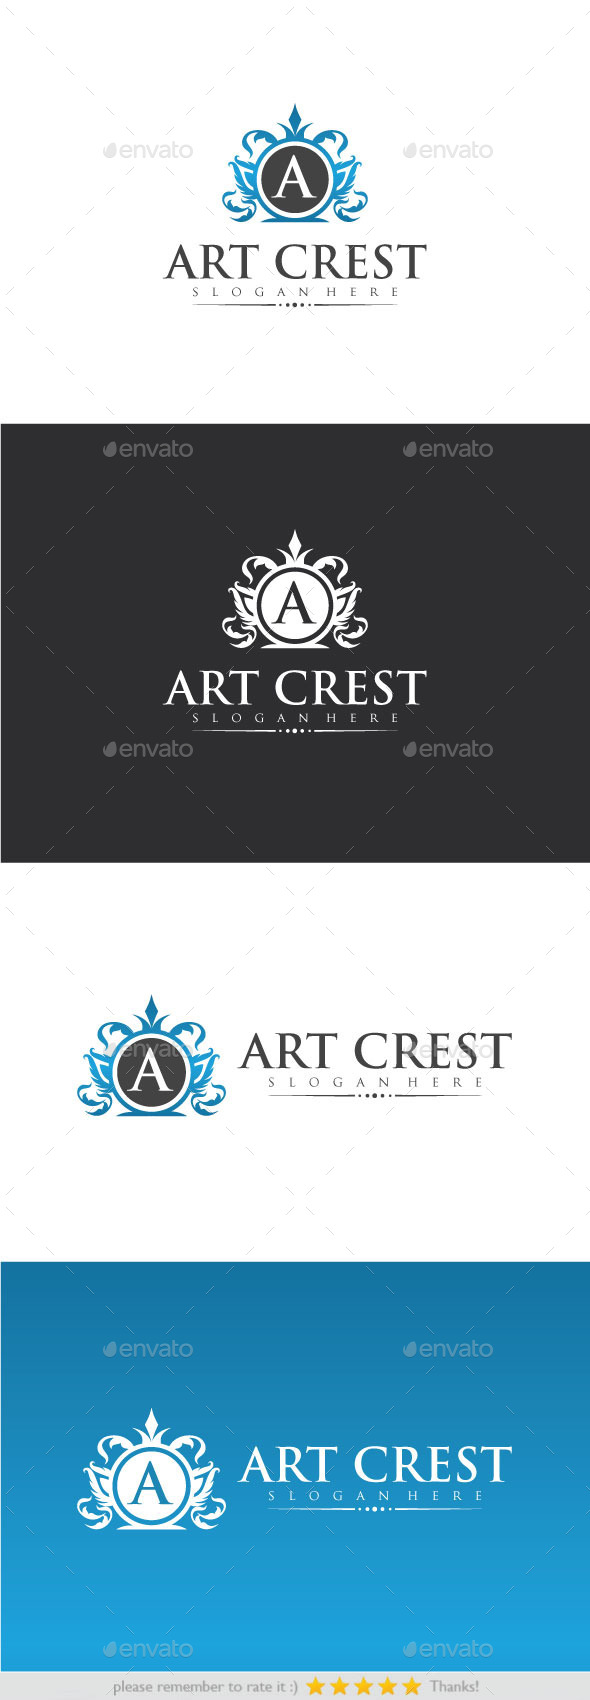 Art Crest - Crests Logo Templates